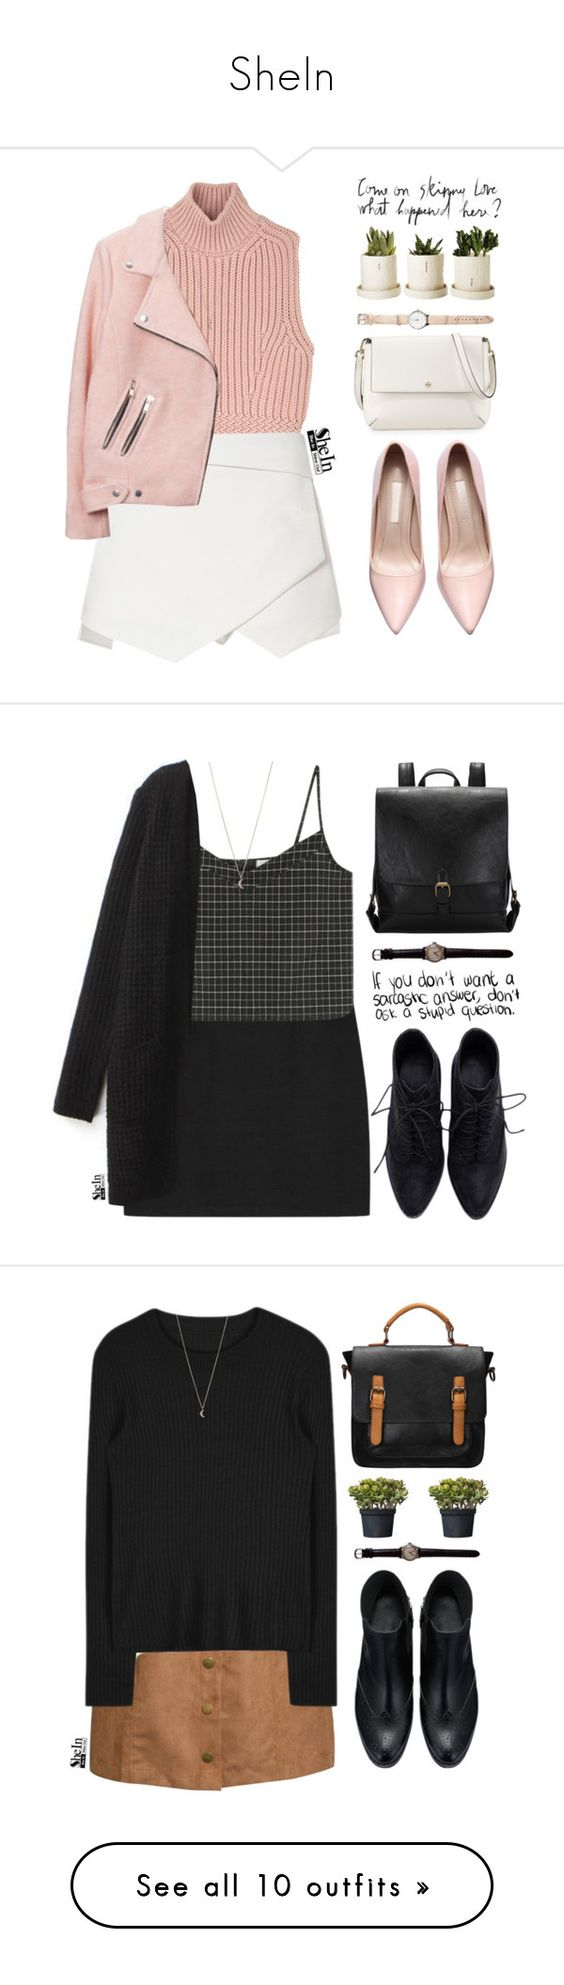 """""""SheIn"""" by mihreta-m ❤ liked on Polyvore featuring Diesel Black Gold, Tory Burch, Minor Obsessions, women's clothing, women, female, woman, misses, juniors and Pilot"""